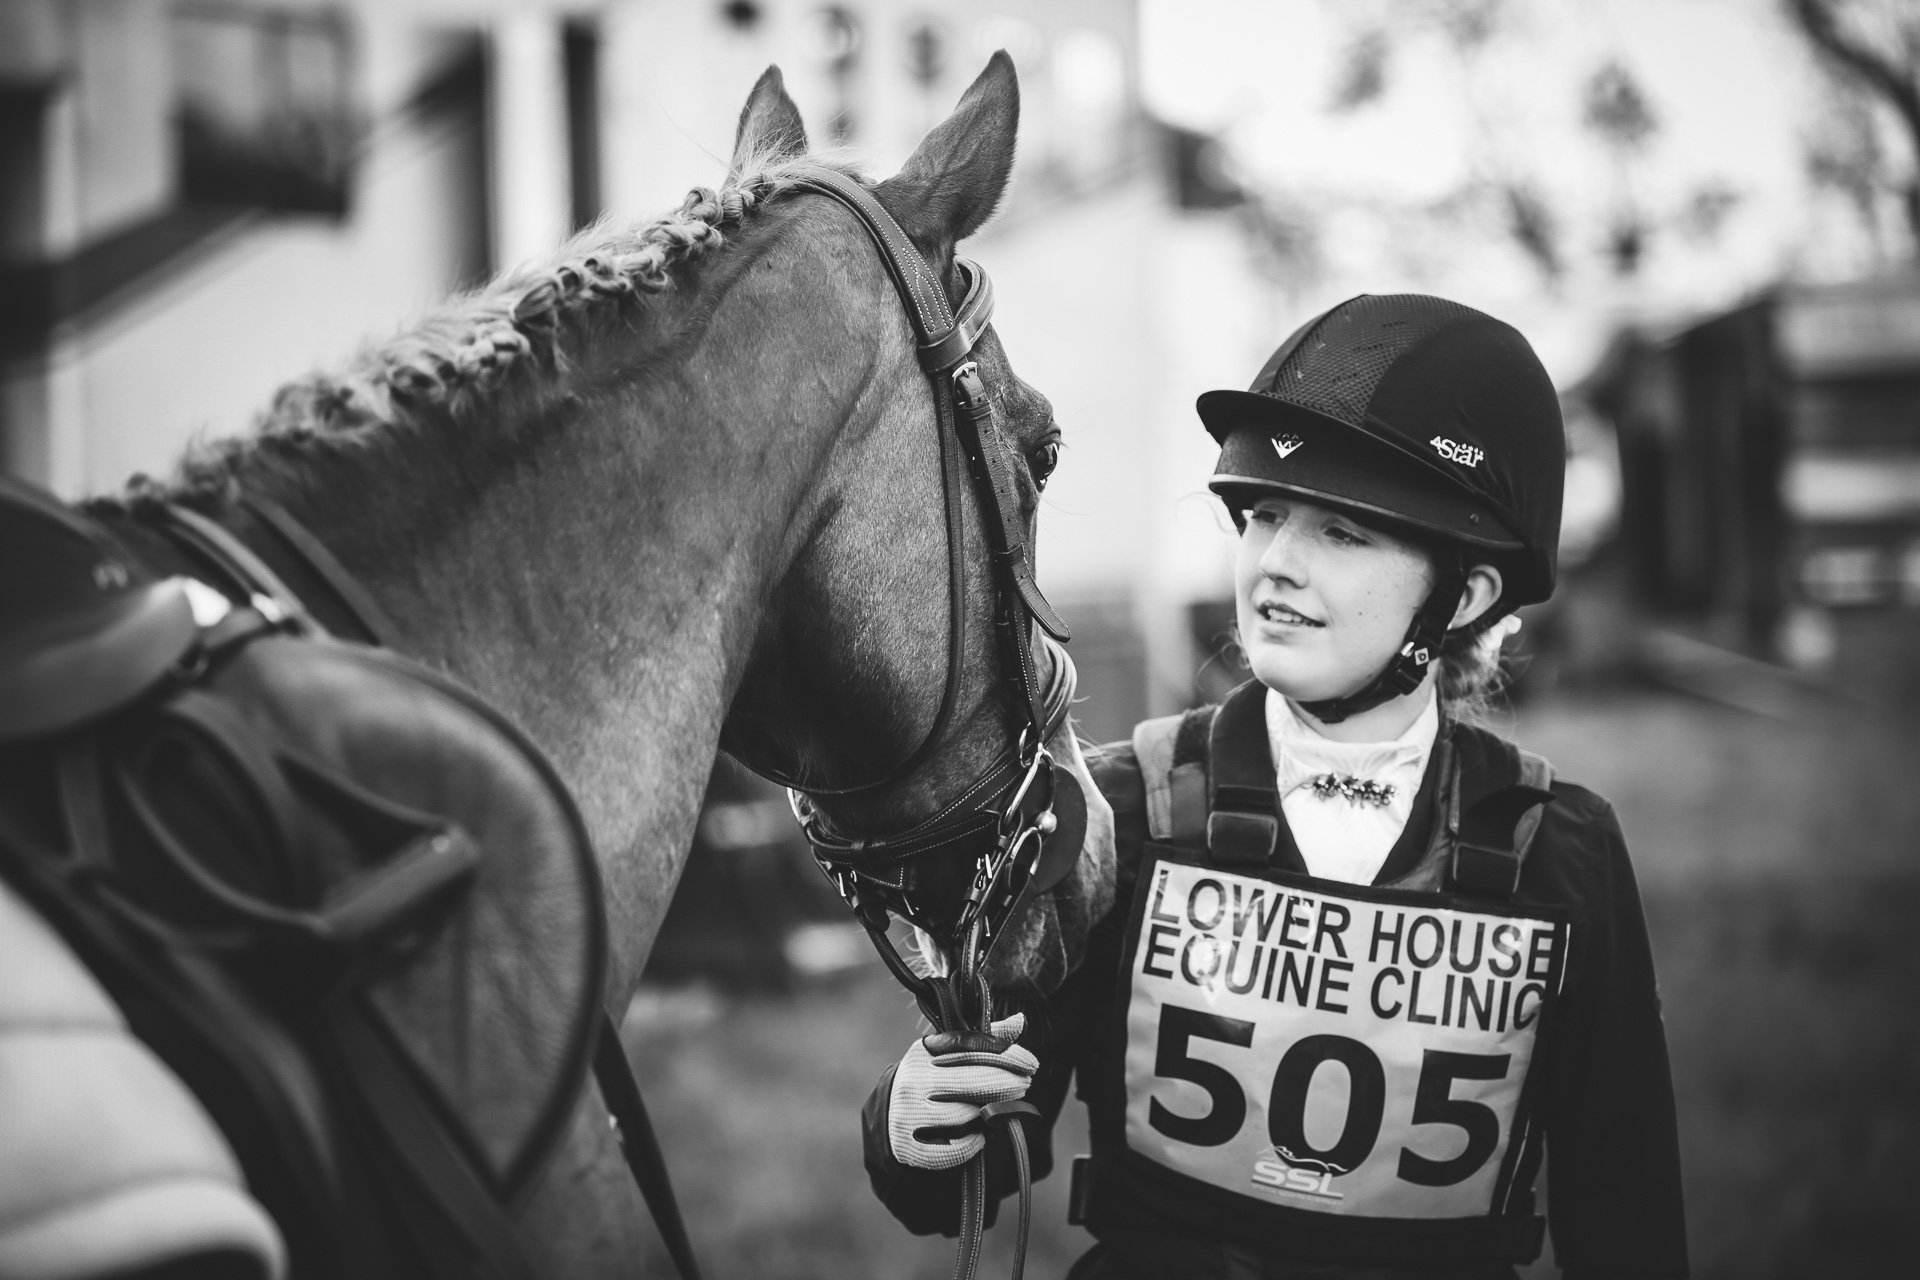 horse and rider at Llanymynech horse trials